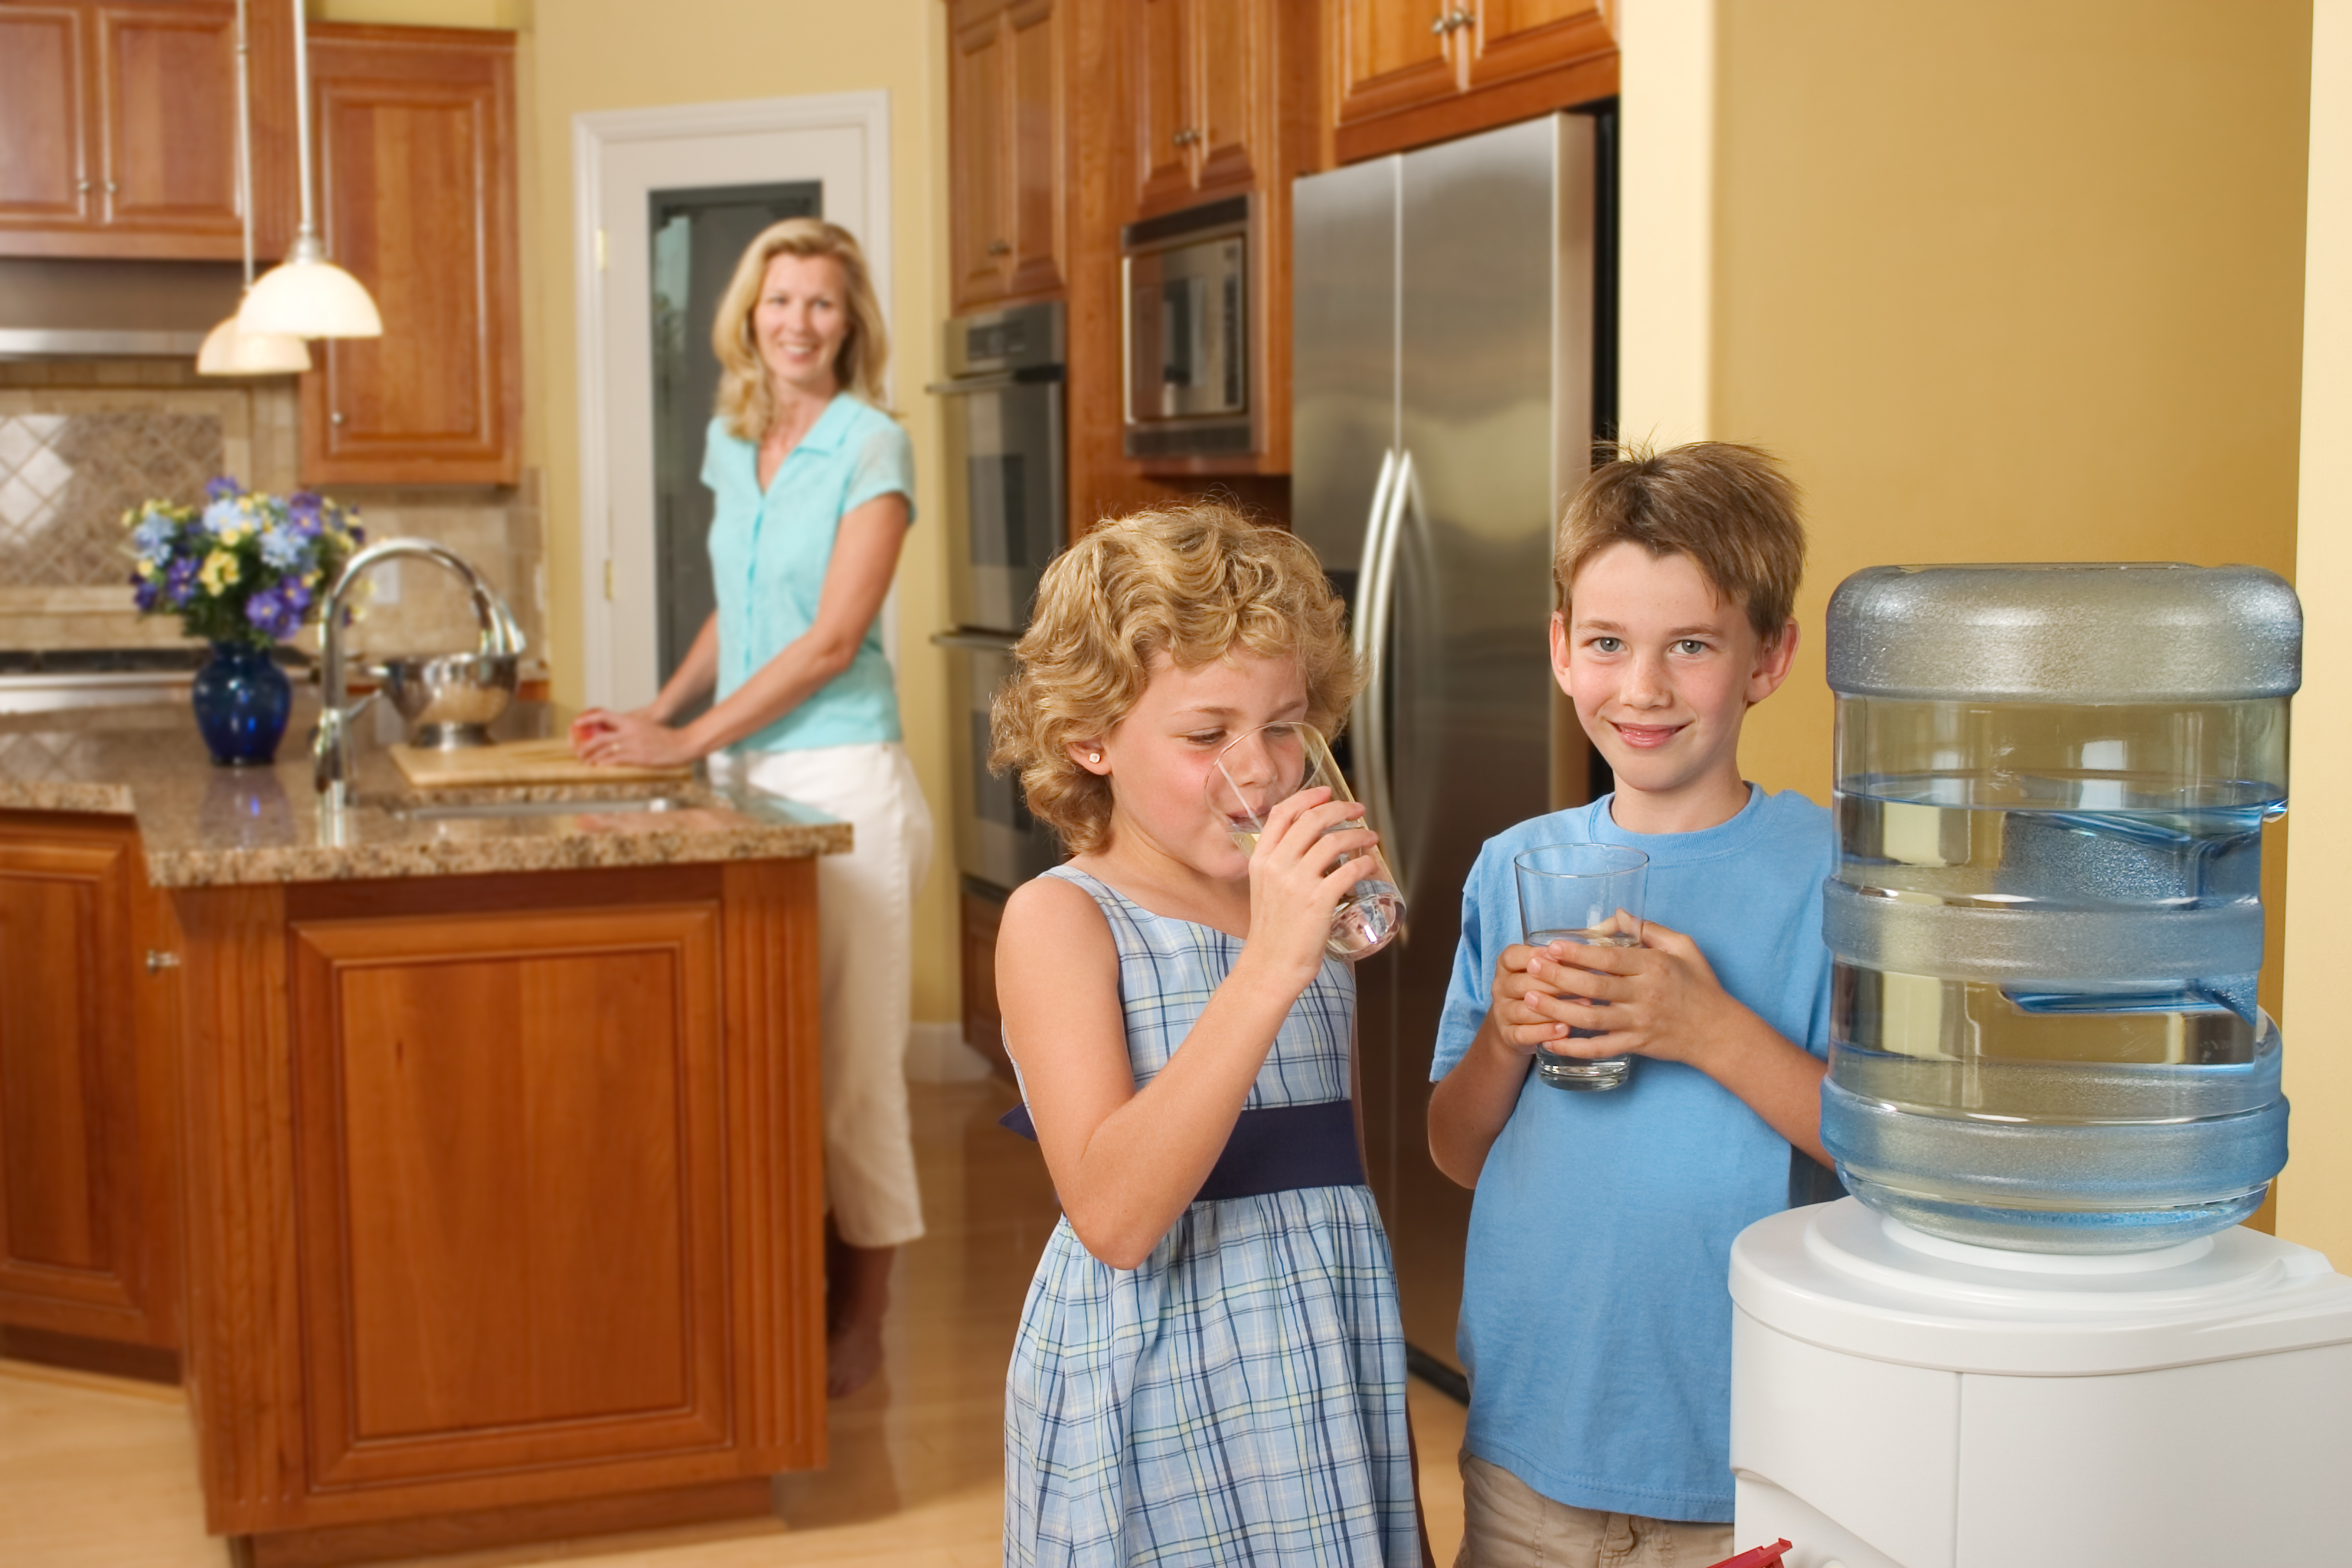 Children at home drinking purified water from a water cooler.